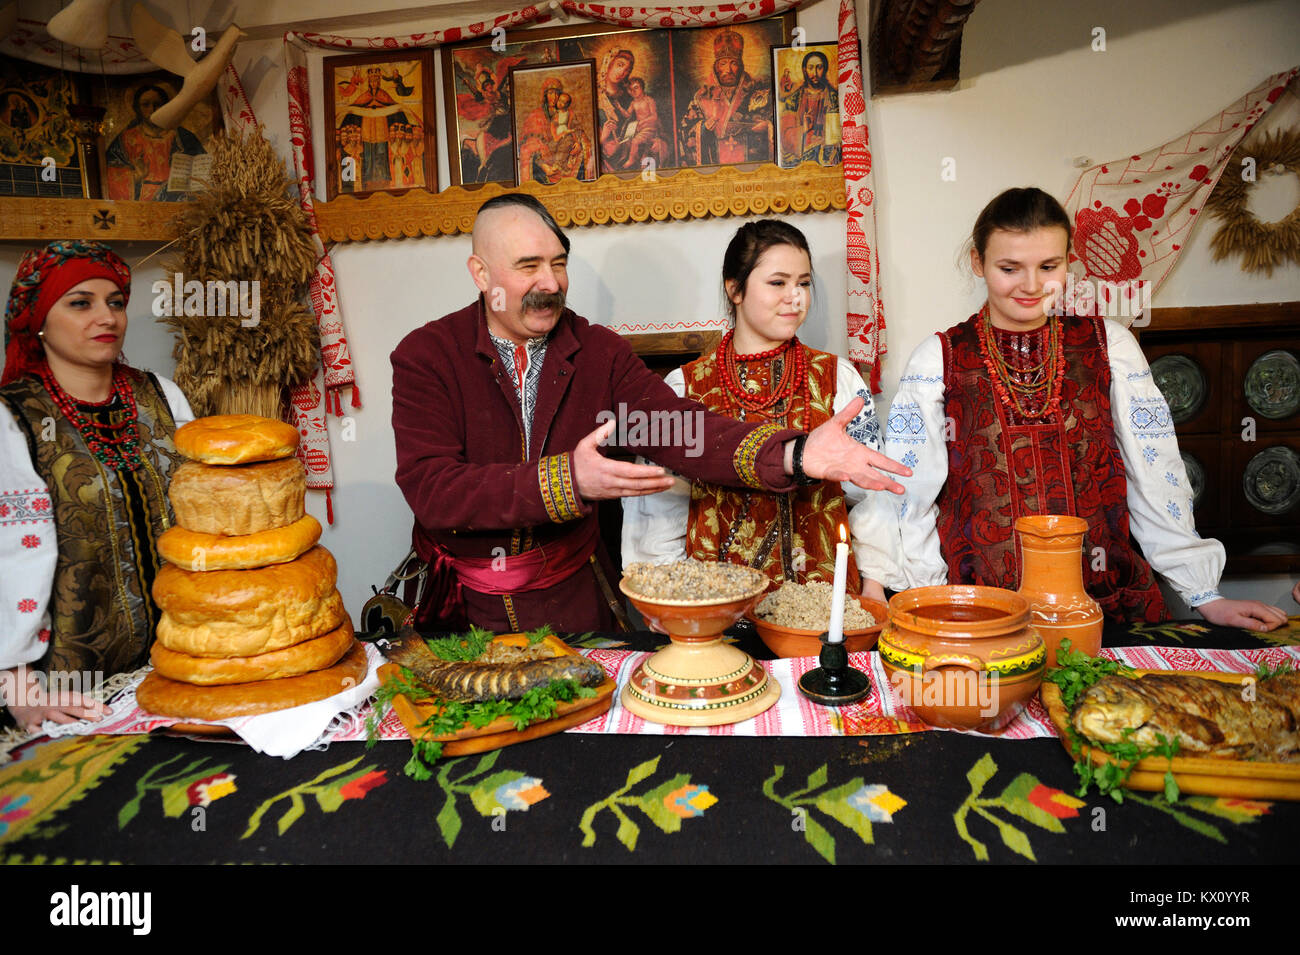 Christmas Eve Dresses.People In Ukrainian Native Dresses Standing Behind Table To